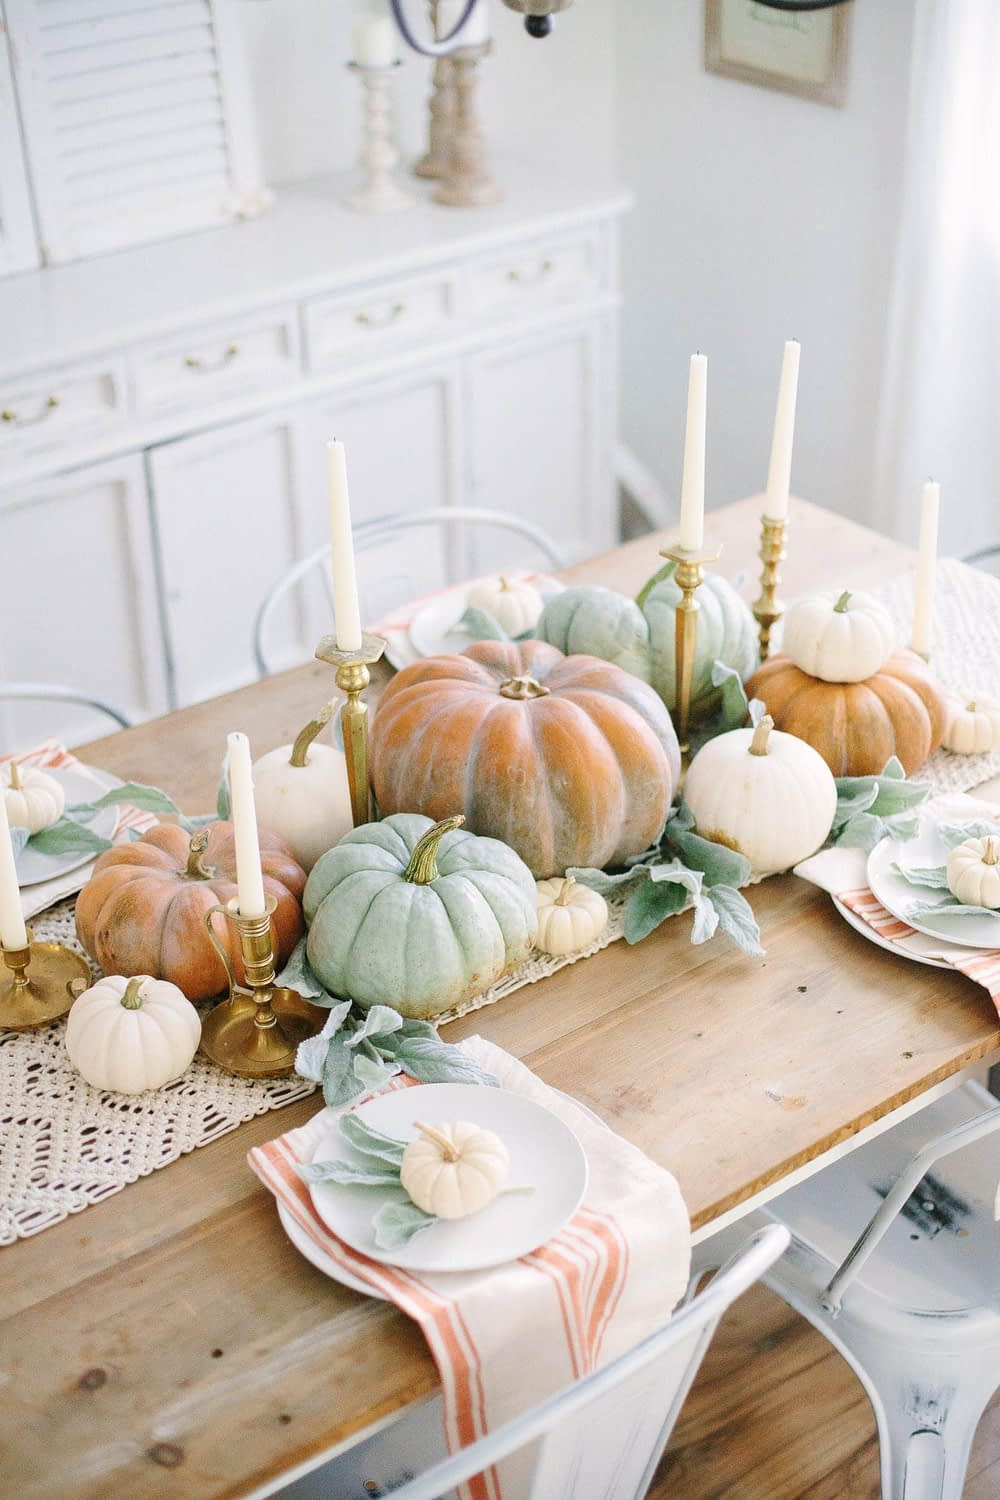 Thanksgiving table centerpieces with pastel colored pumpkins and vintage brass candlesticks